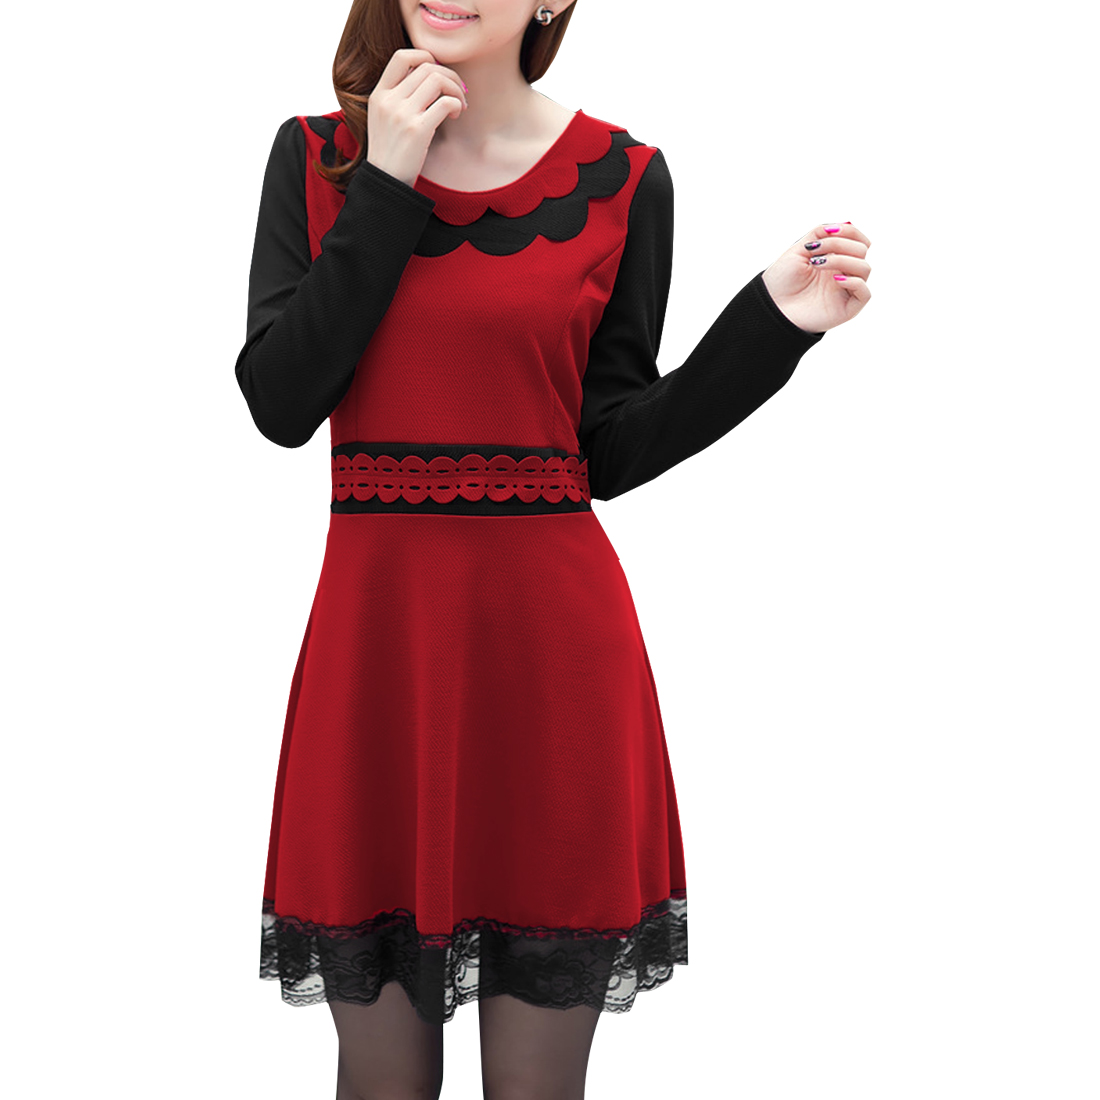 Lady Round Neck Long Sleeve Lace Patchwork Red Black Dress XS